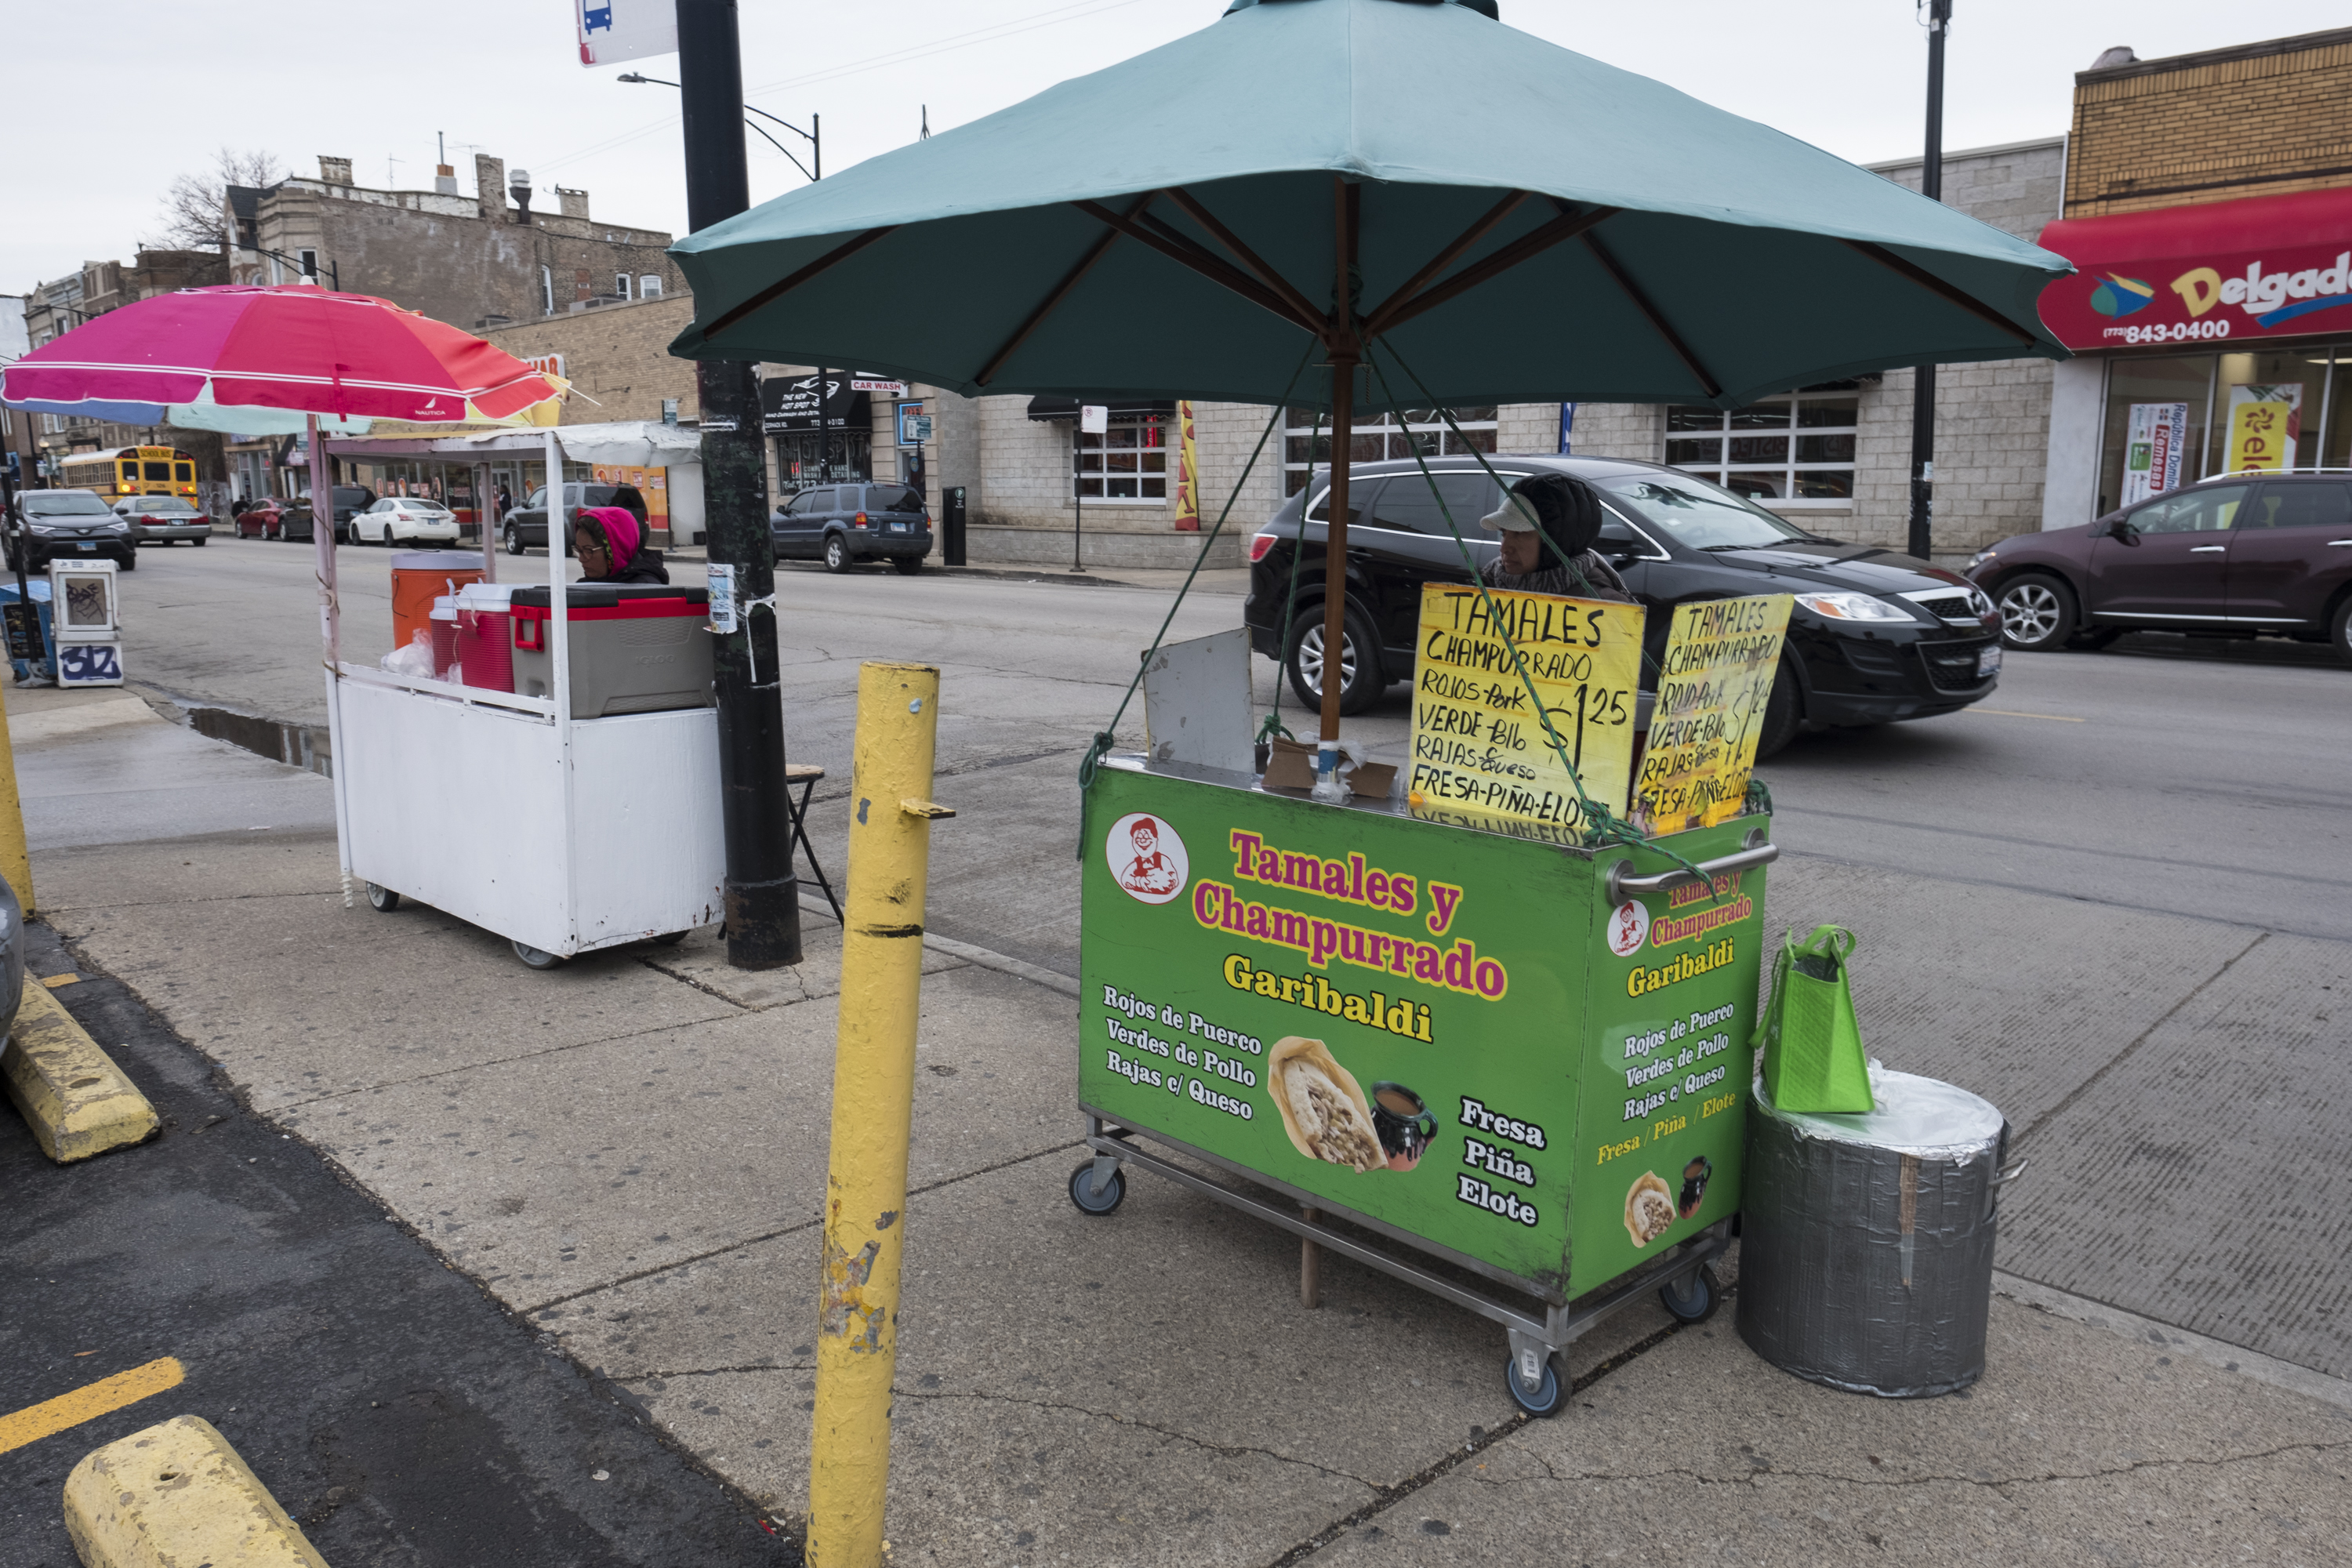 Tamale Vendors in Pilsen/Little Village Continually Overcome Obstacles